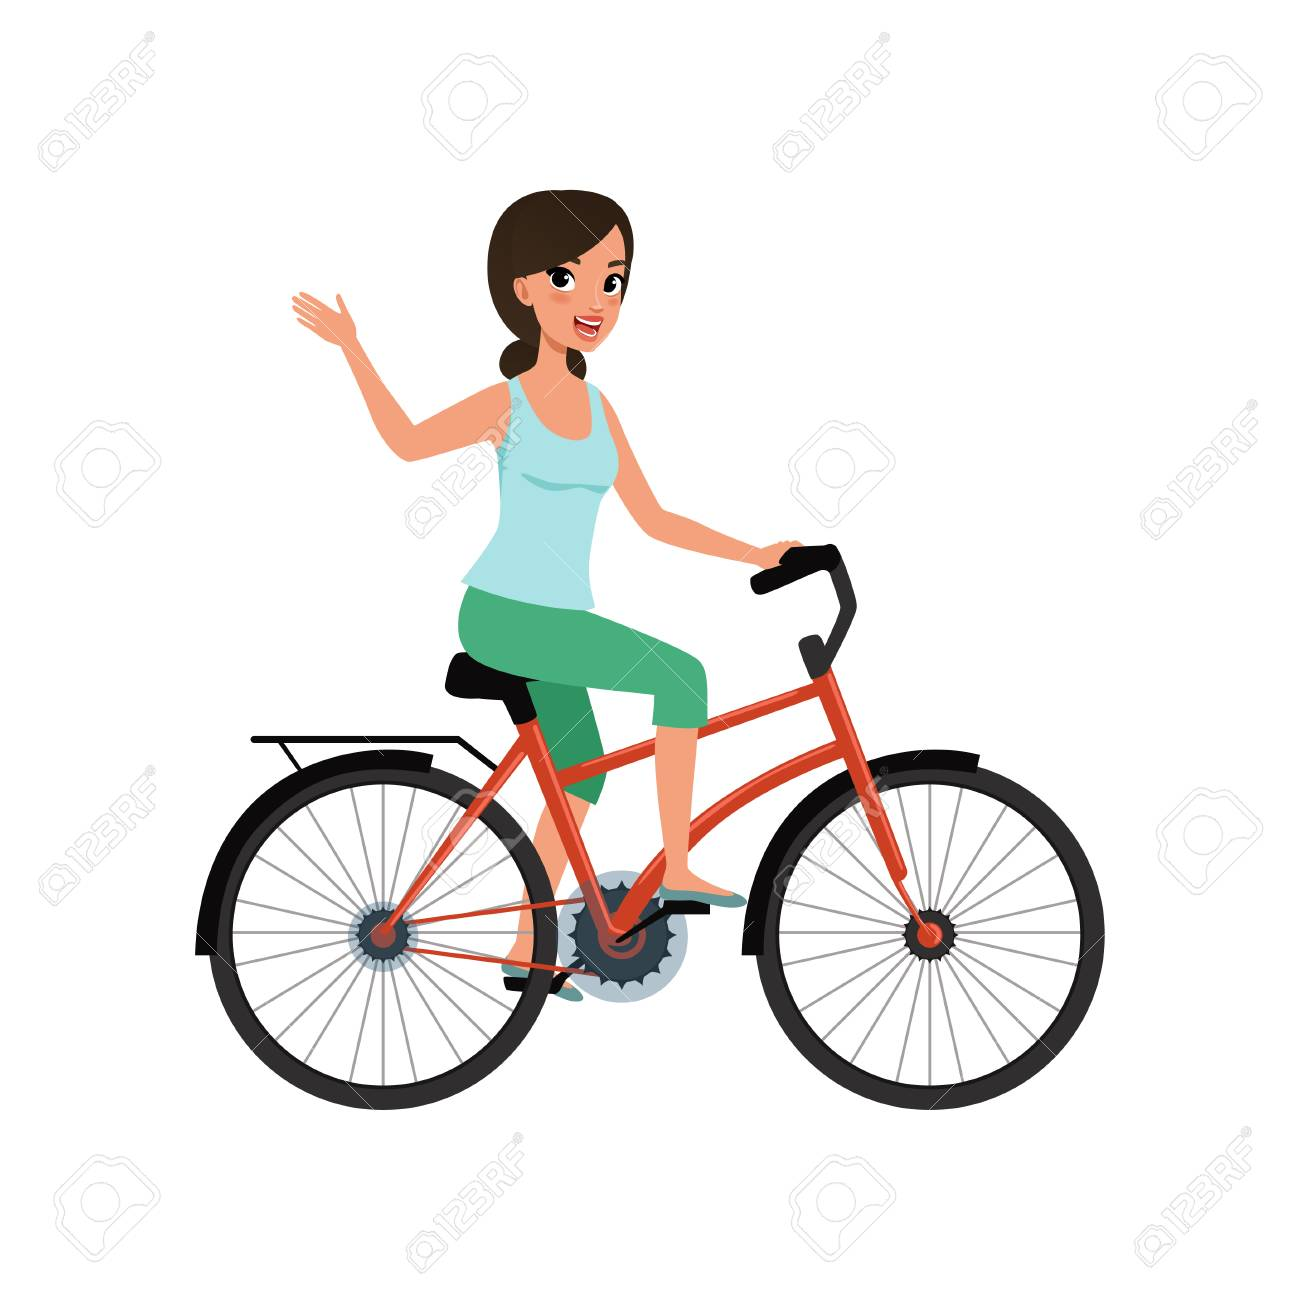 Young woman riding a bike and waving her hand, active lifestyle concept vector Illustrations on a white background - 102851062